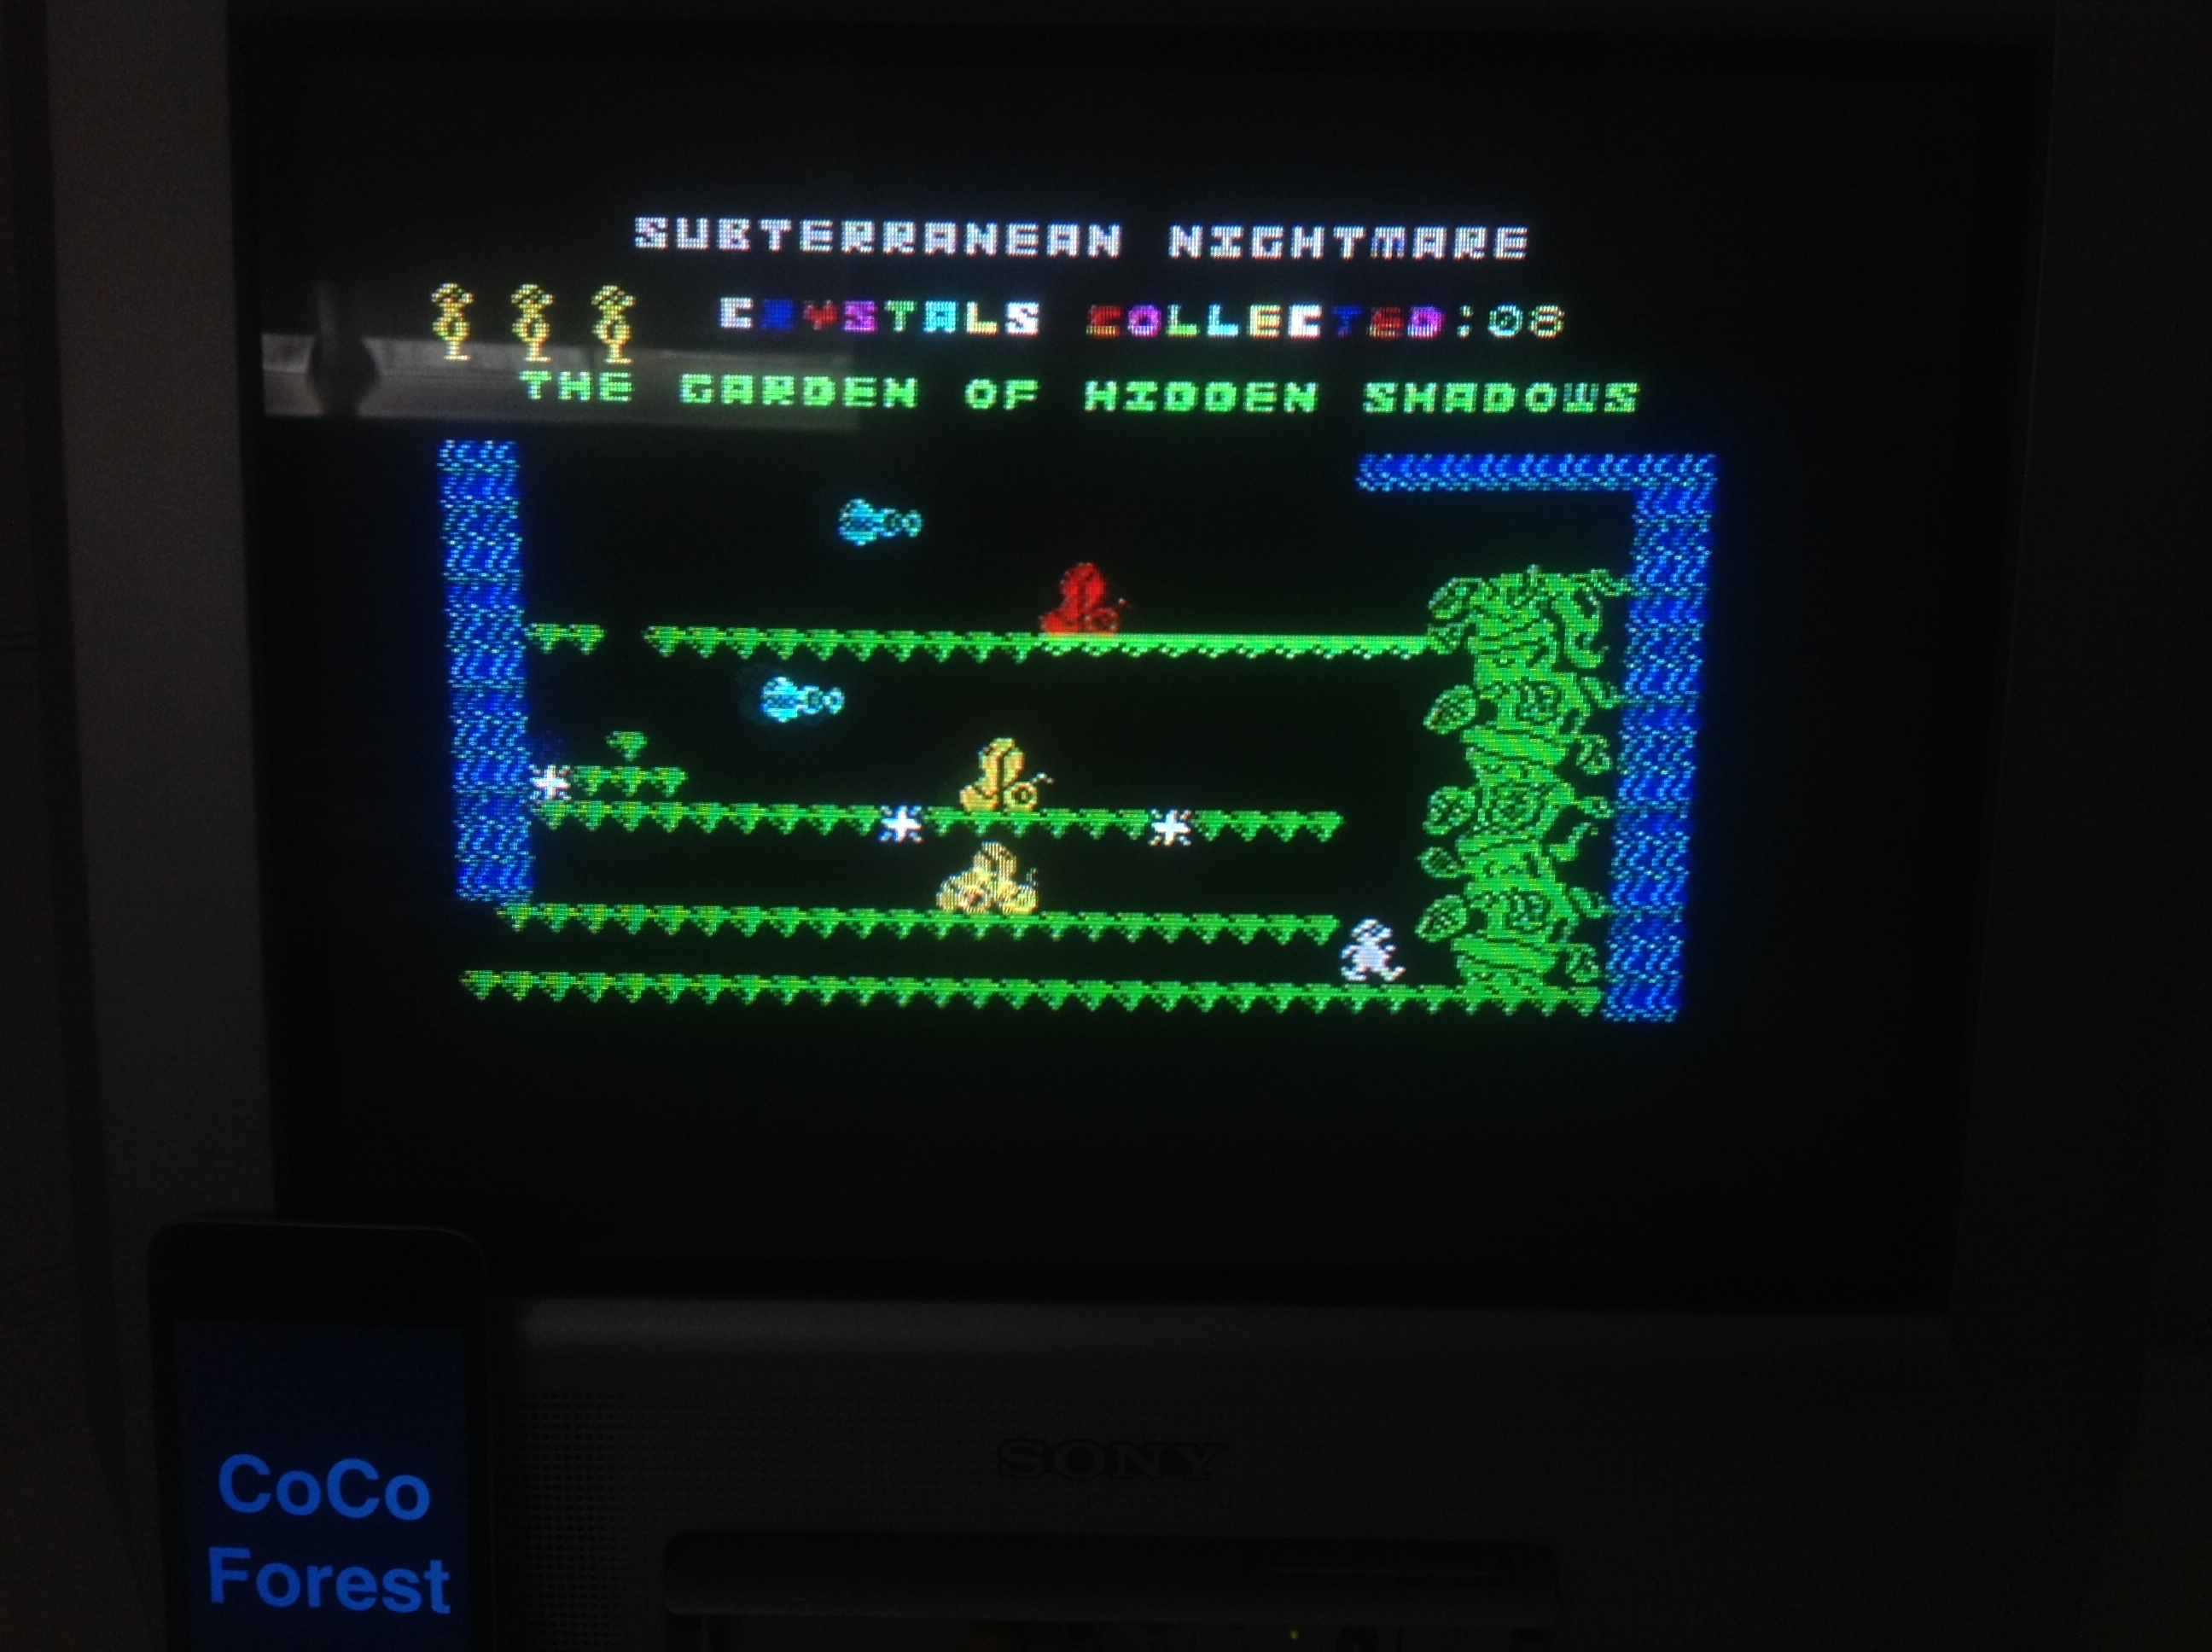 CoCoForest: Subterranean Nightmare [Crystals Collected] (ZX Spectrum) 8 points on 2016-01-09 07:19:37